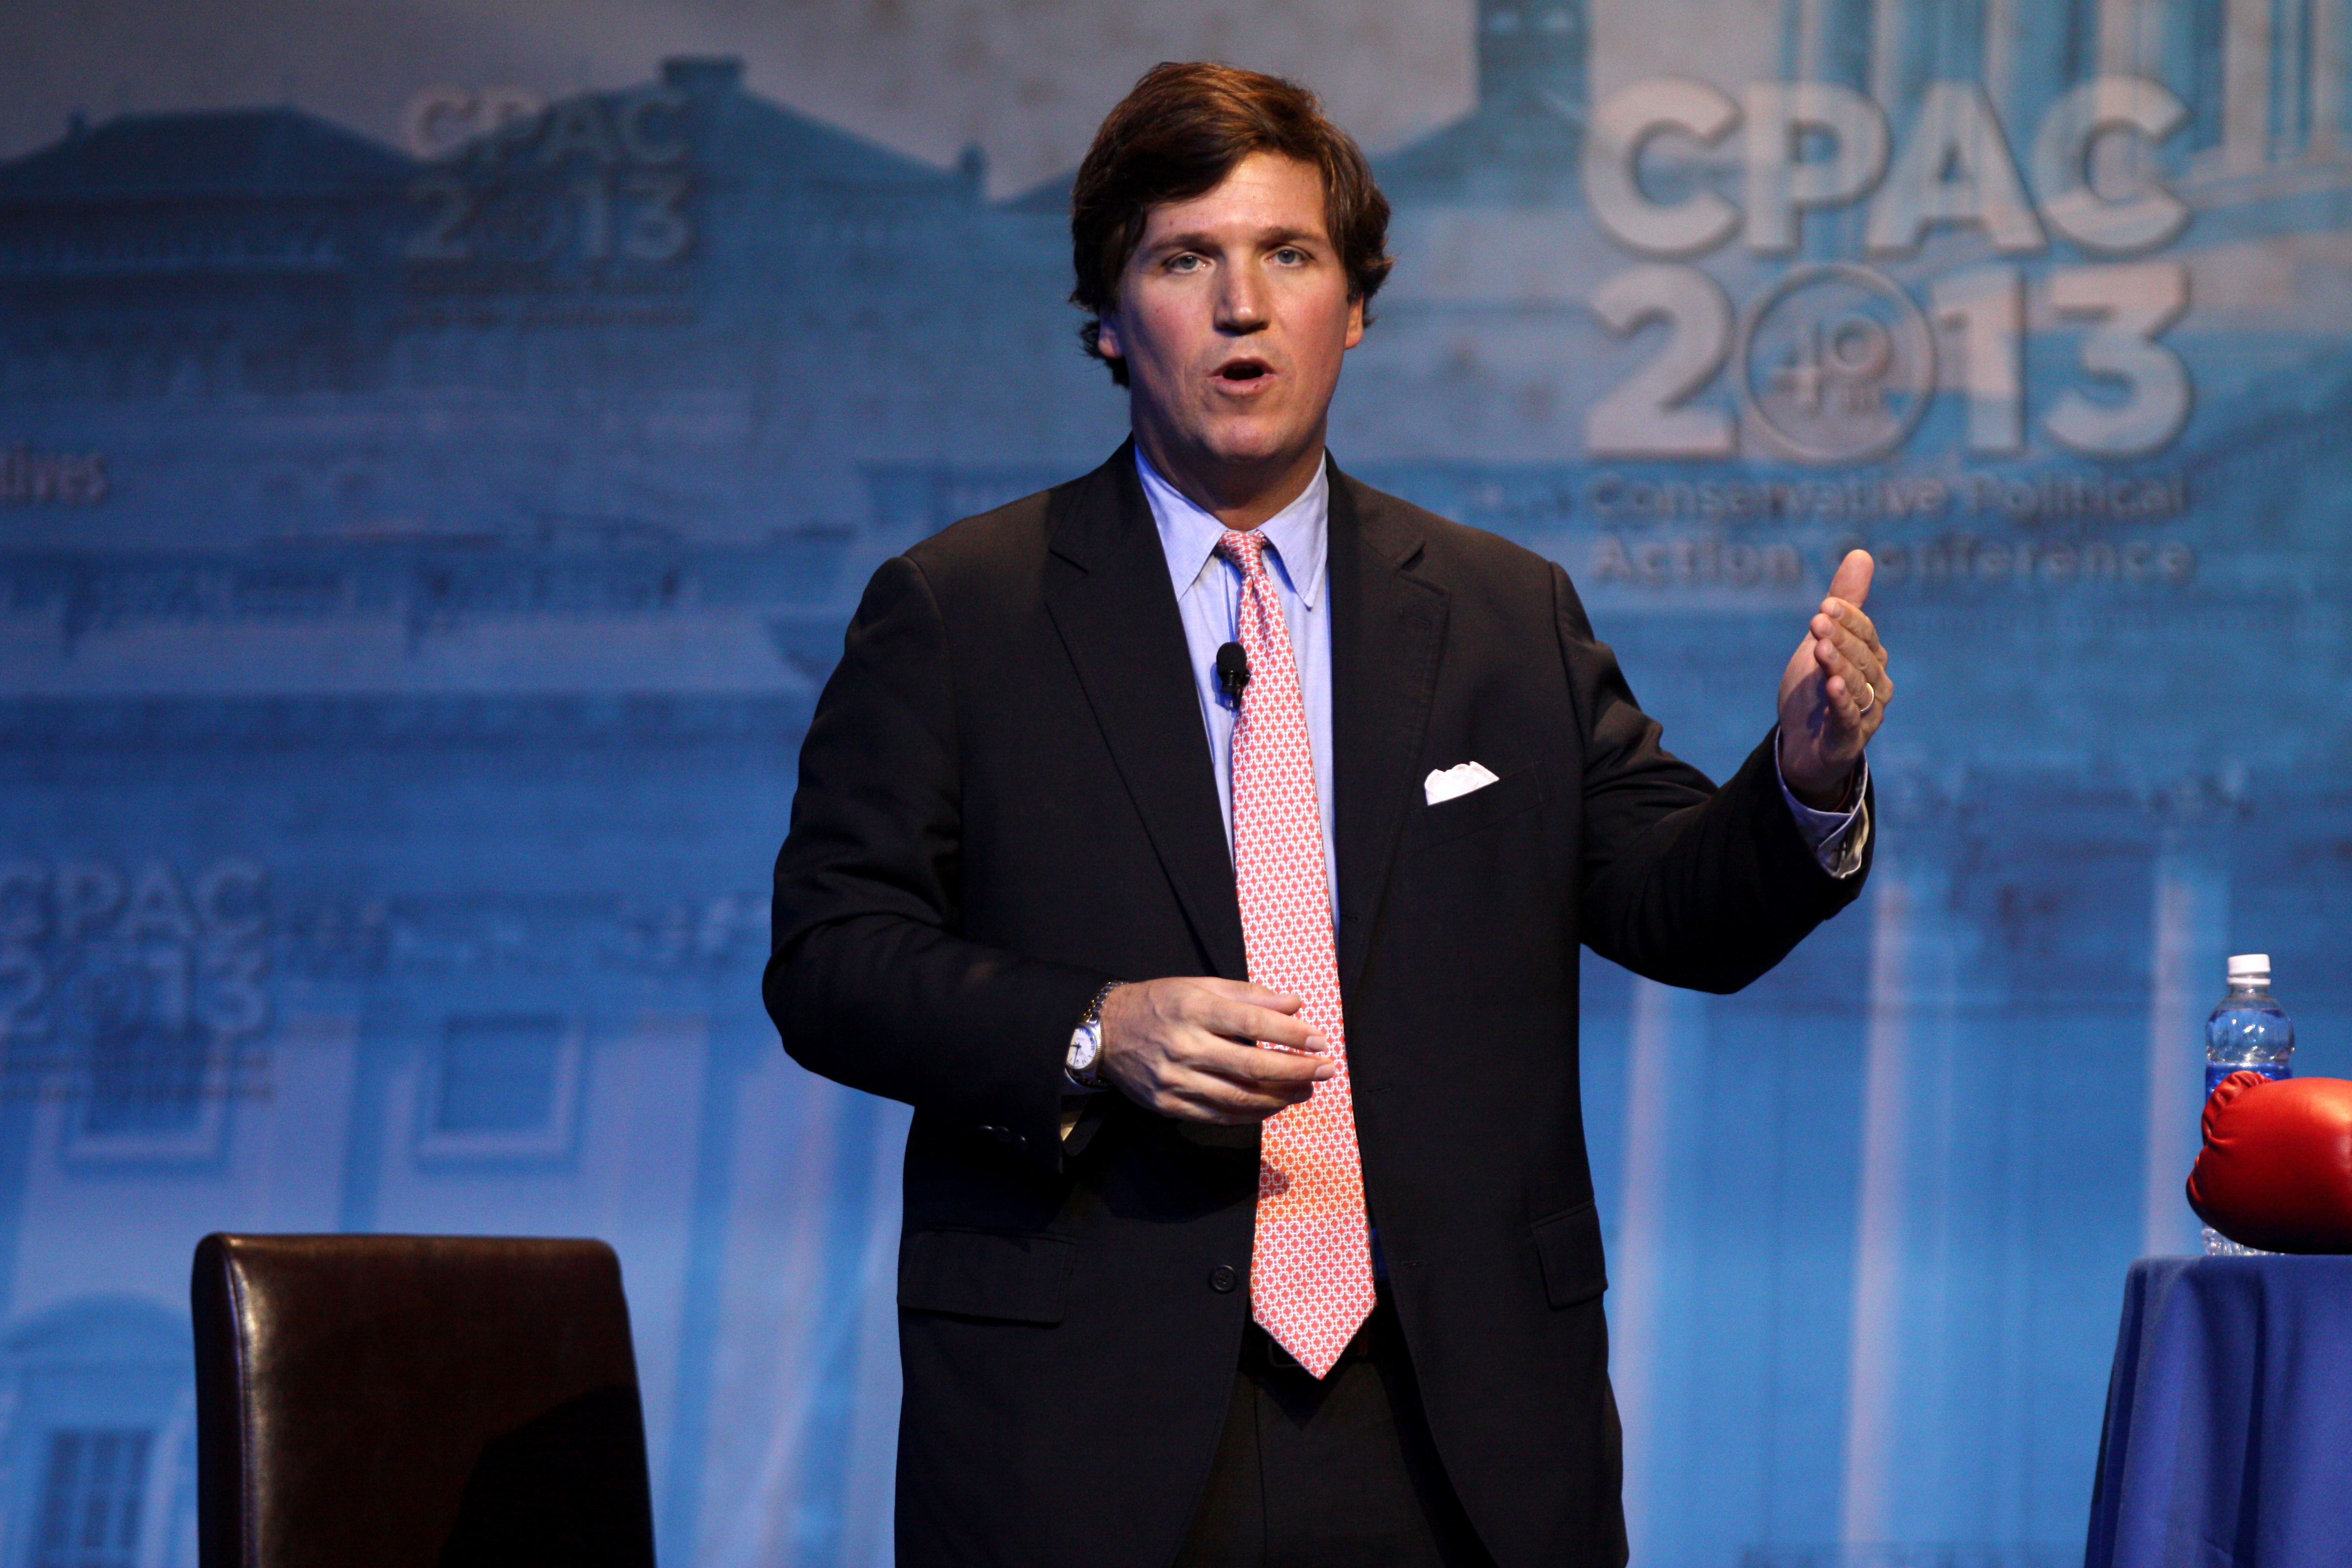 Tucker Carlson speaking at the 2013 Conservative Political Action Conference (CPAC) in National Harbor, Maryland